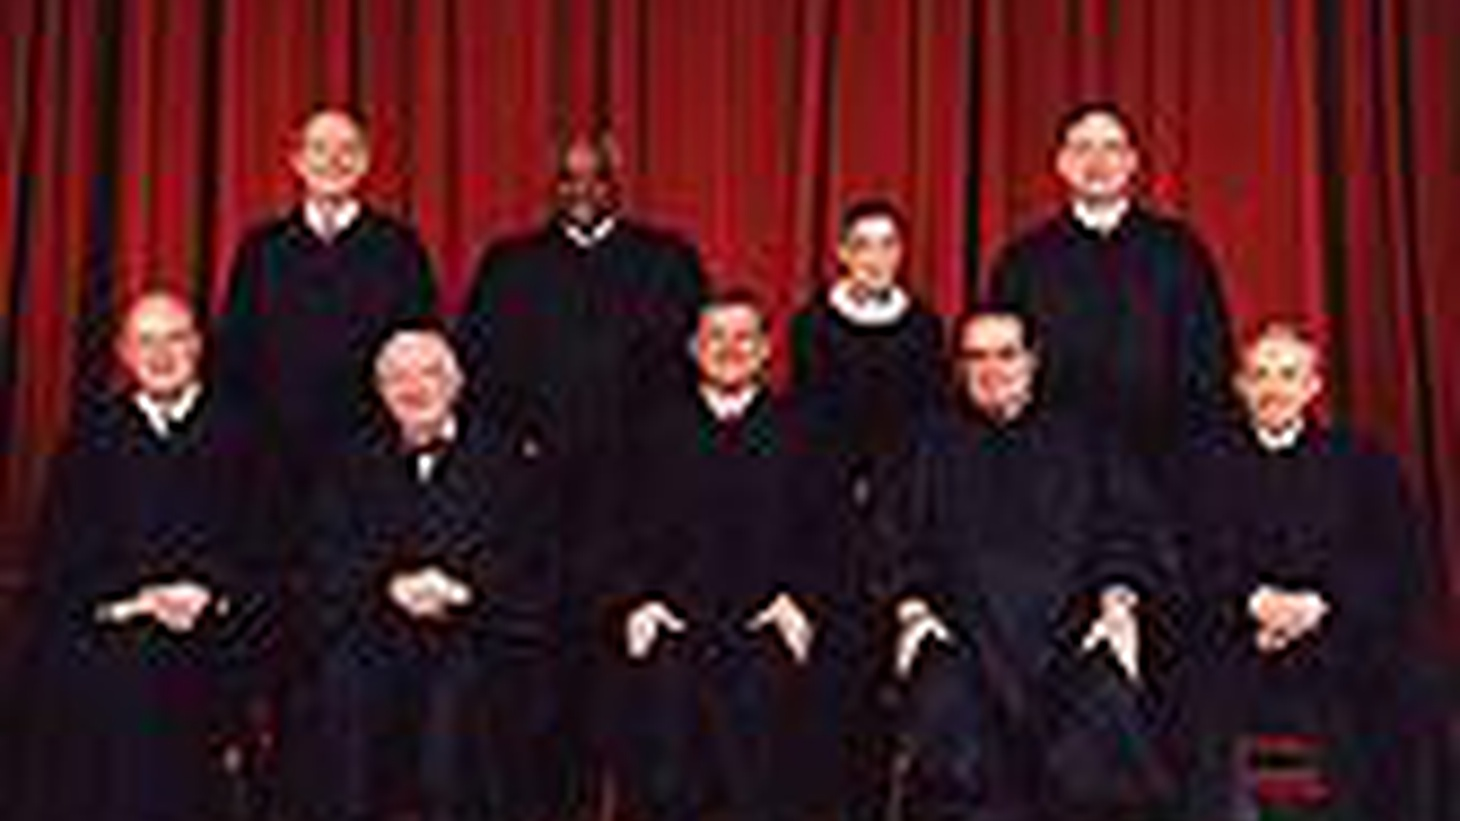 """The US Supreme Court ruled today that, when school districts try to maintain racial diversity, they must be """"color blind."""" It's another 5-to-4 split decision on an issue with far-reaching implications. What does that say about the Roberts Court? Also, immigration reform is of the table, and the Bald Eagle is off the """"endangered"""" list but what about other species?"""